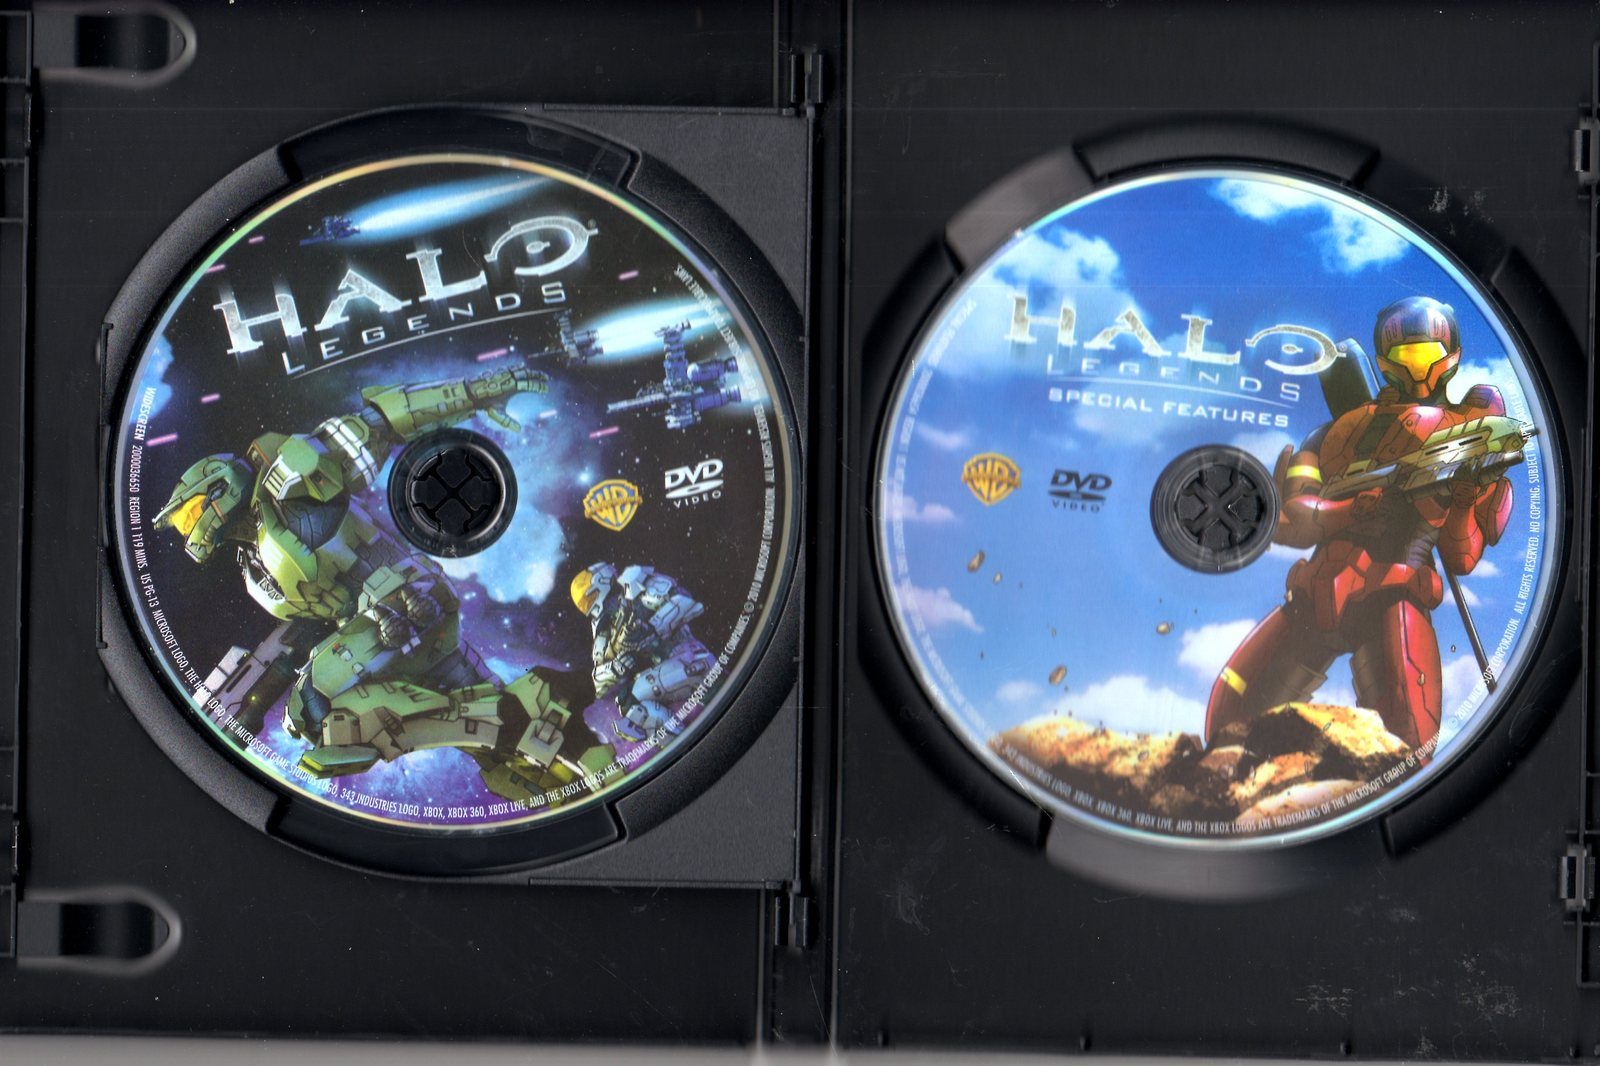 DVD - Halo Legends (2 Disc Special Edition)